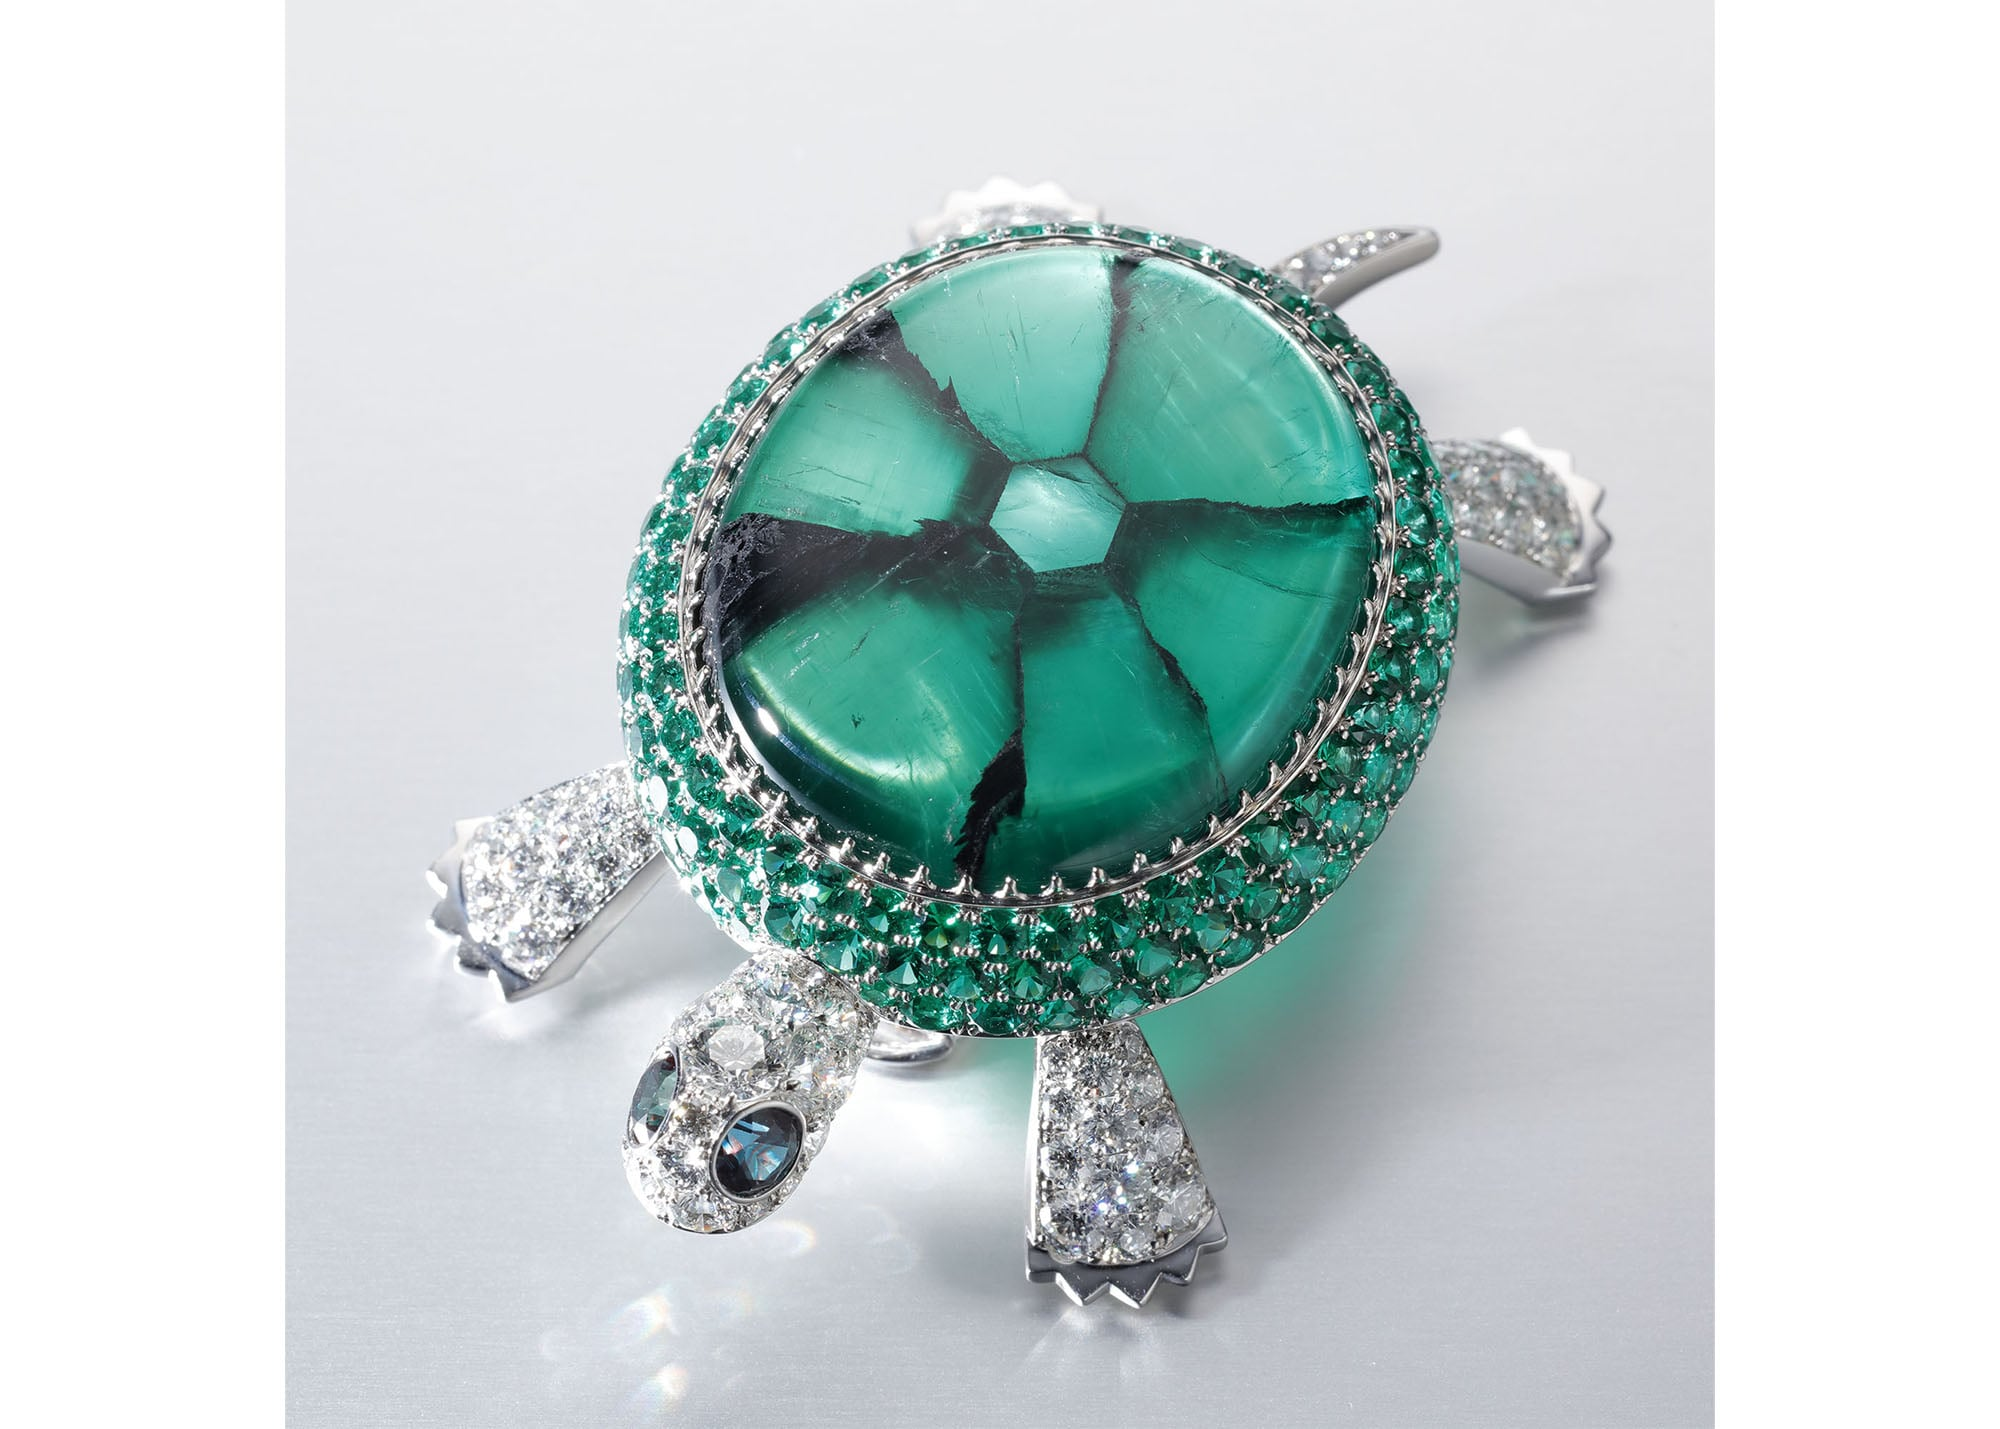 "The ""Turtle"" brooch is designed using the unique crystal structure of the Trapiche Emerald. It is extremely rare to find a Trapiche Emerald with magnificent pattern, that clearly appears like this brooch. Brooch, Pt950, Trapiche Emerald, Emerald Diamond, Alexandrite (Not for Sale)"